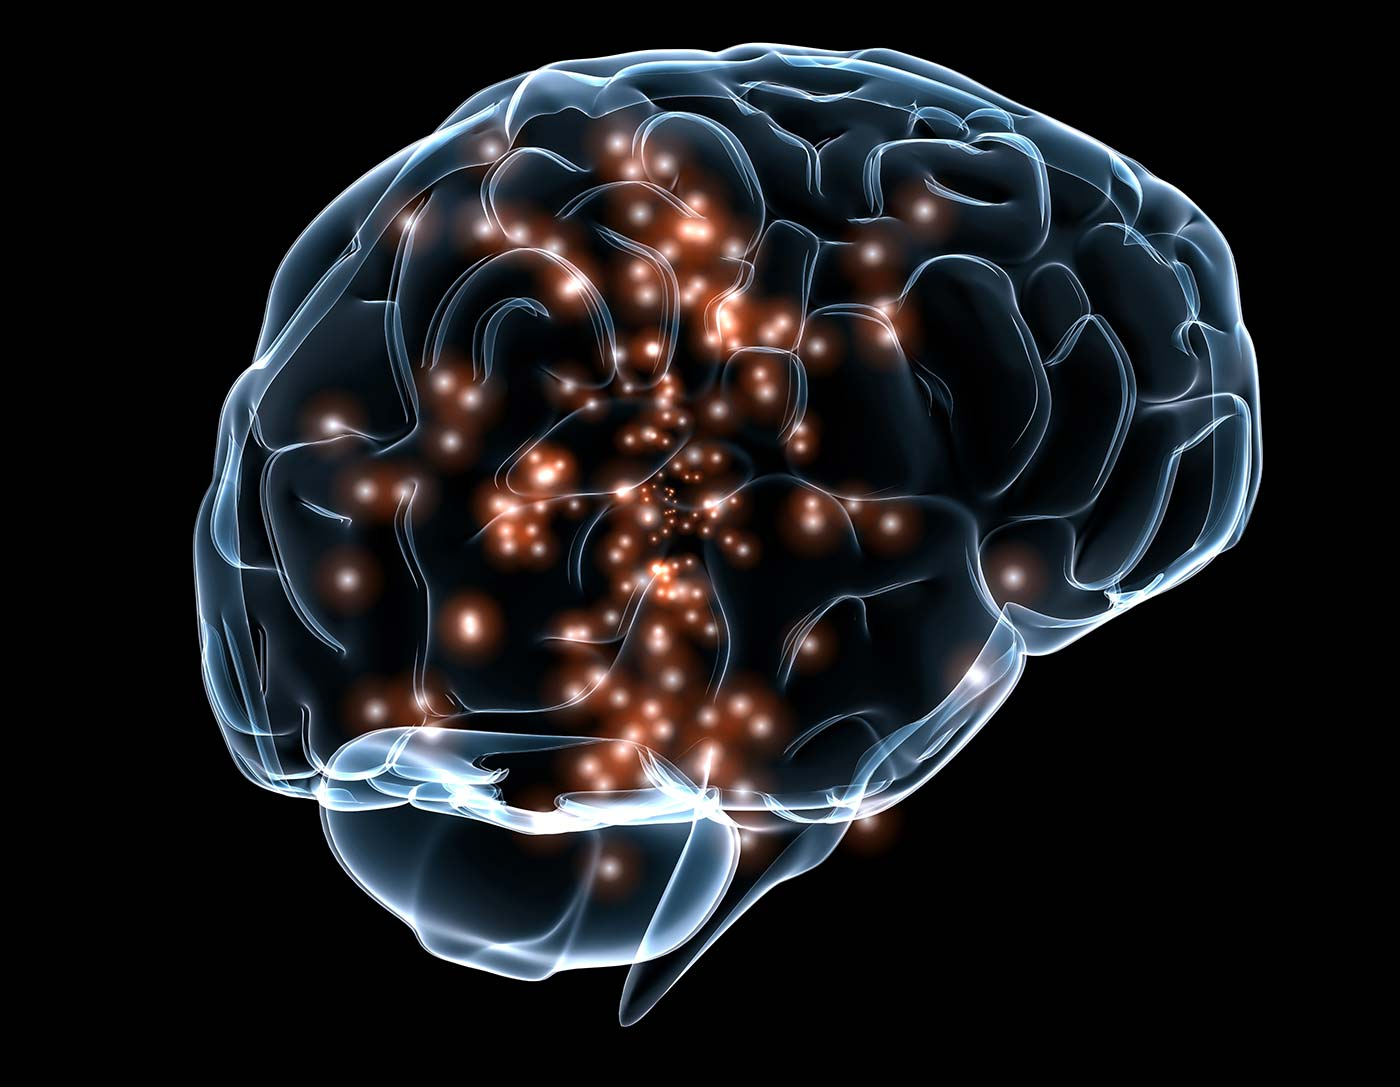 DARPA's Systems-Based Neurotechnology for Emerging Therapies program.